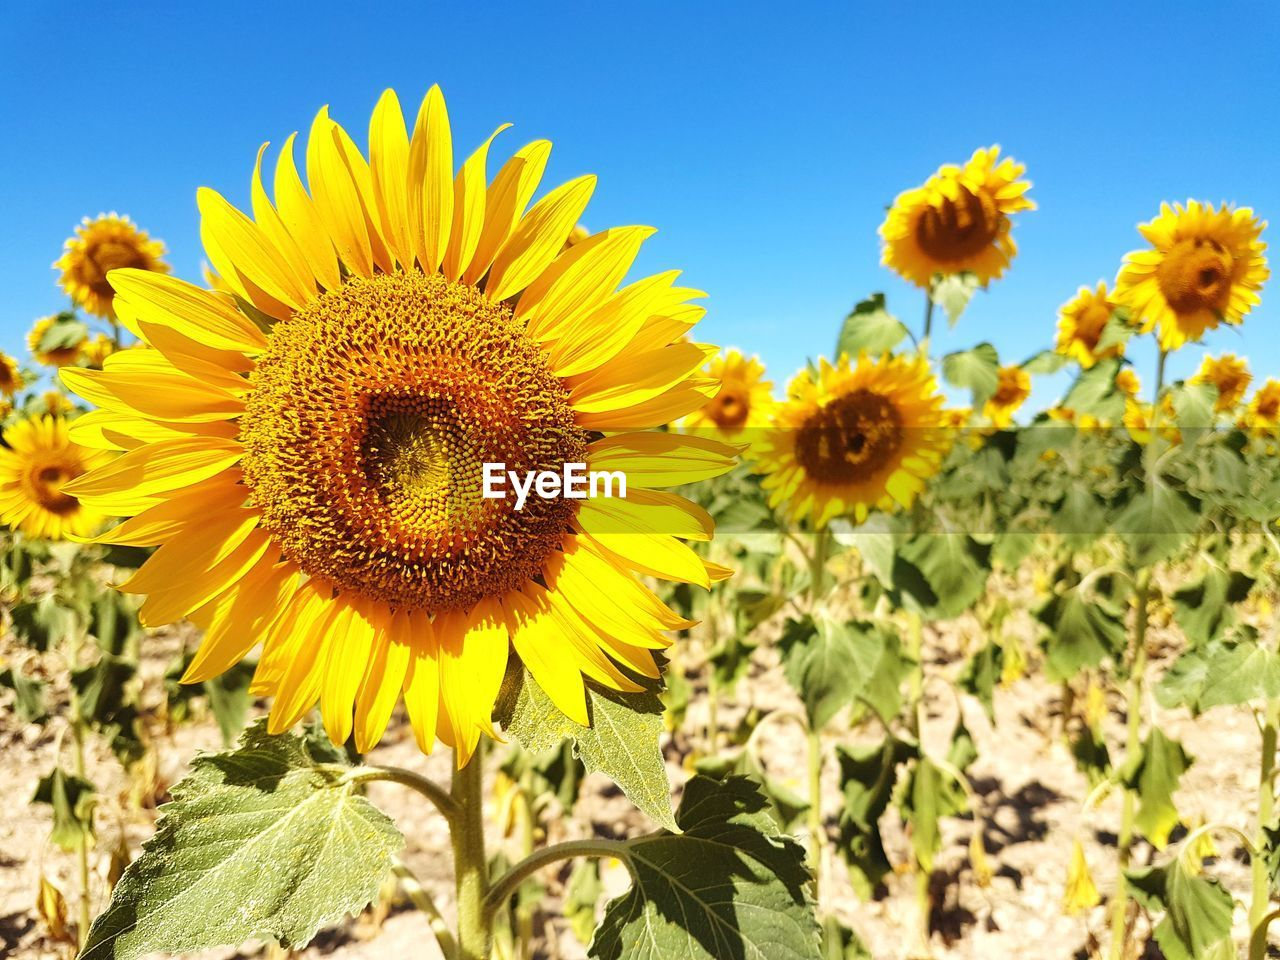 flower, yellow, nature, beauty in nature, petal, growth, plant, flower head, fragility, sunflower, field, outdoors, freshness, no people, day, springtime, agriculture, close-up, blooming, sky